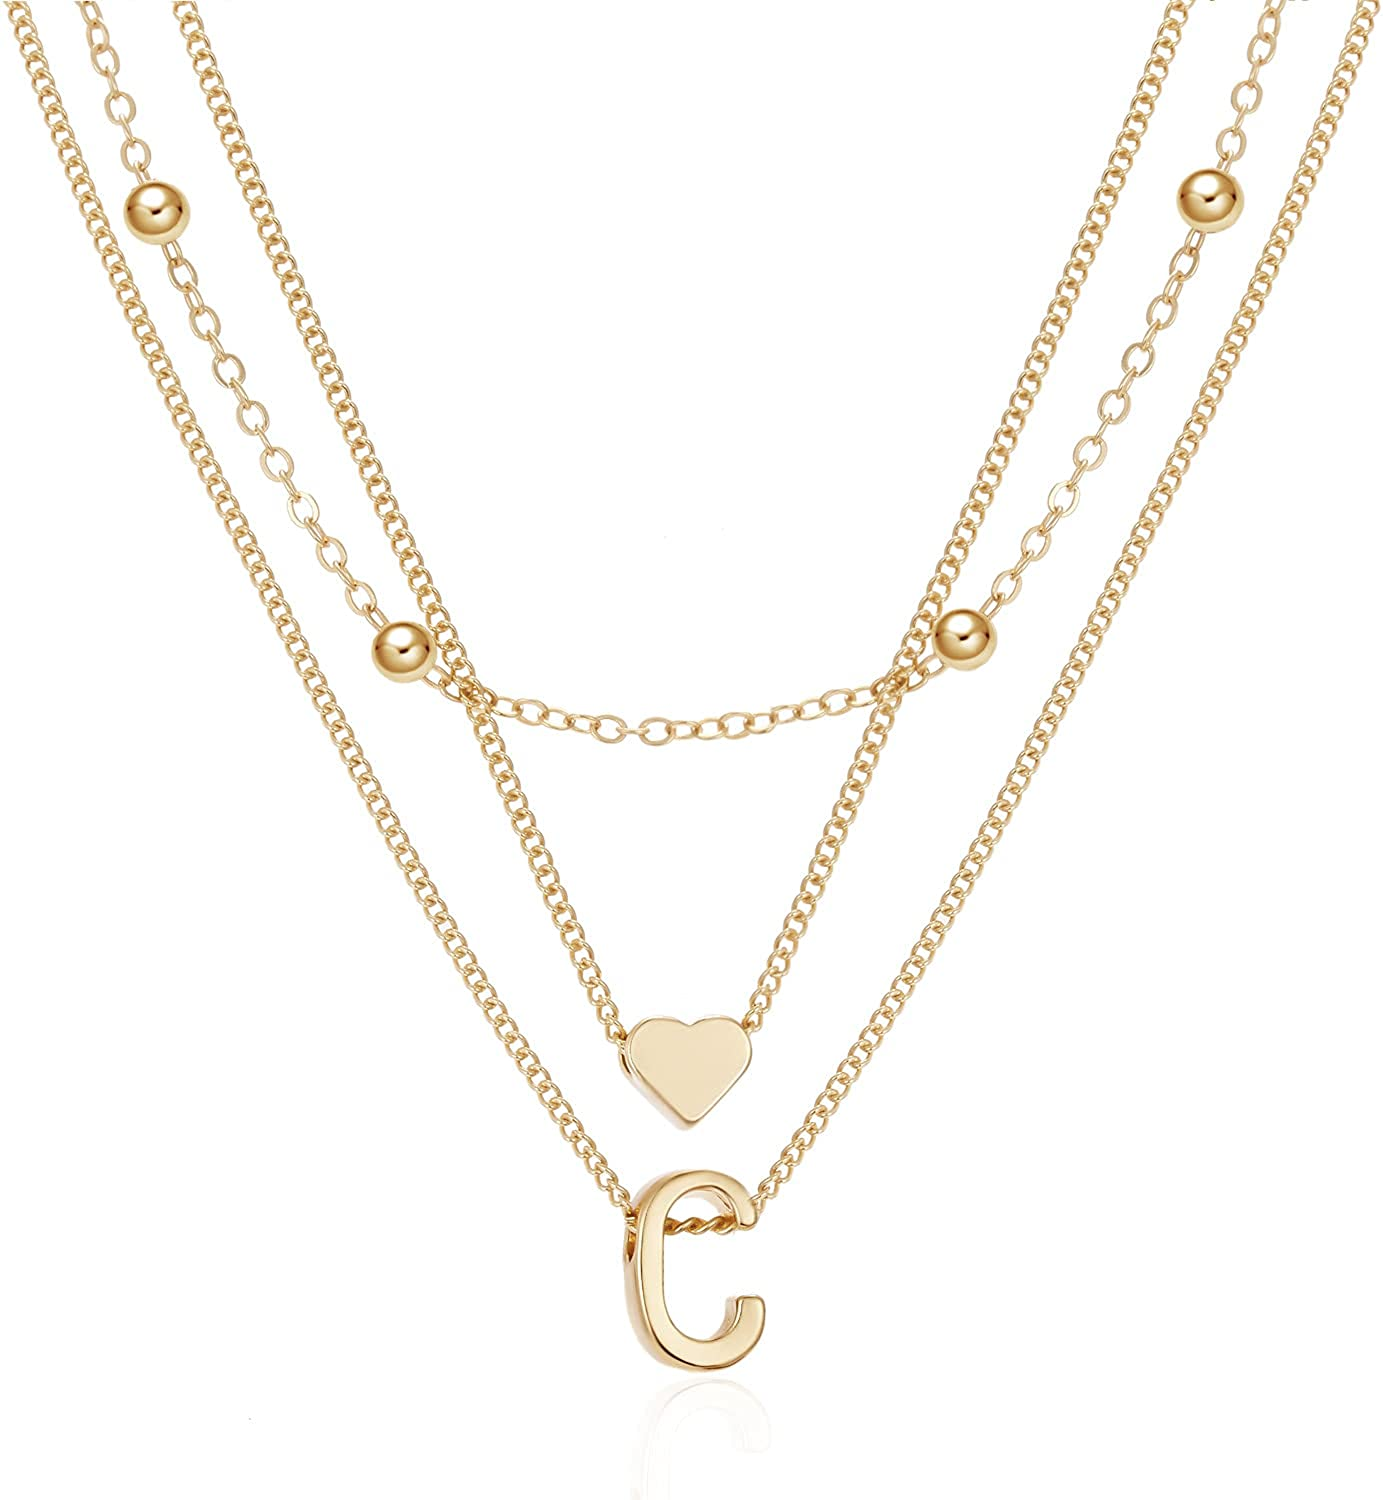 Super sale Dainty Gold Layered Initial Necklaces Max 85% OFF Cute For Simple Hea Women